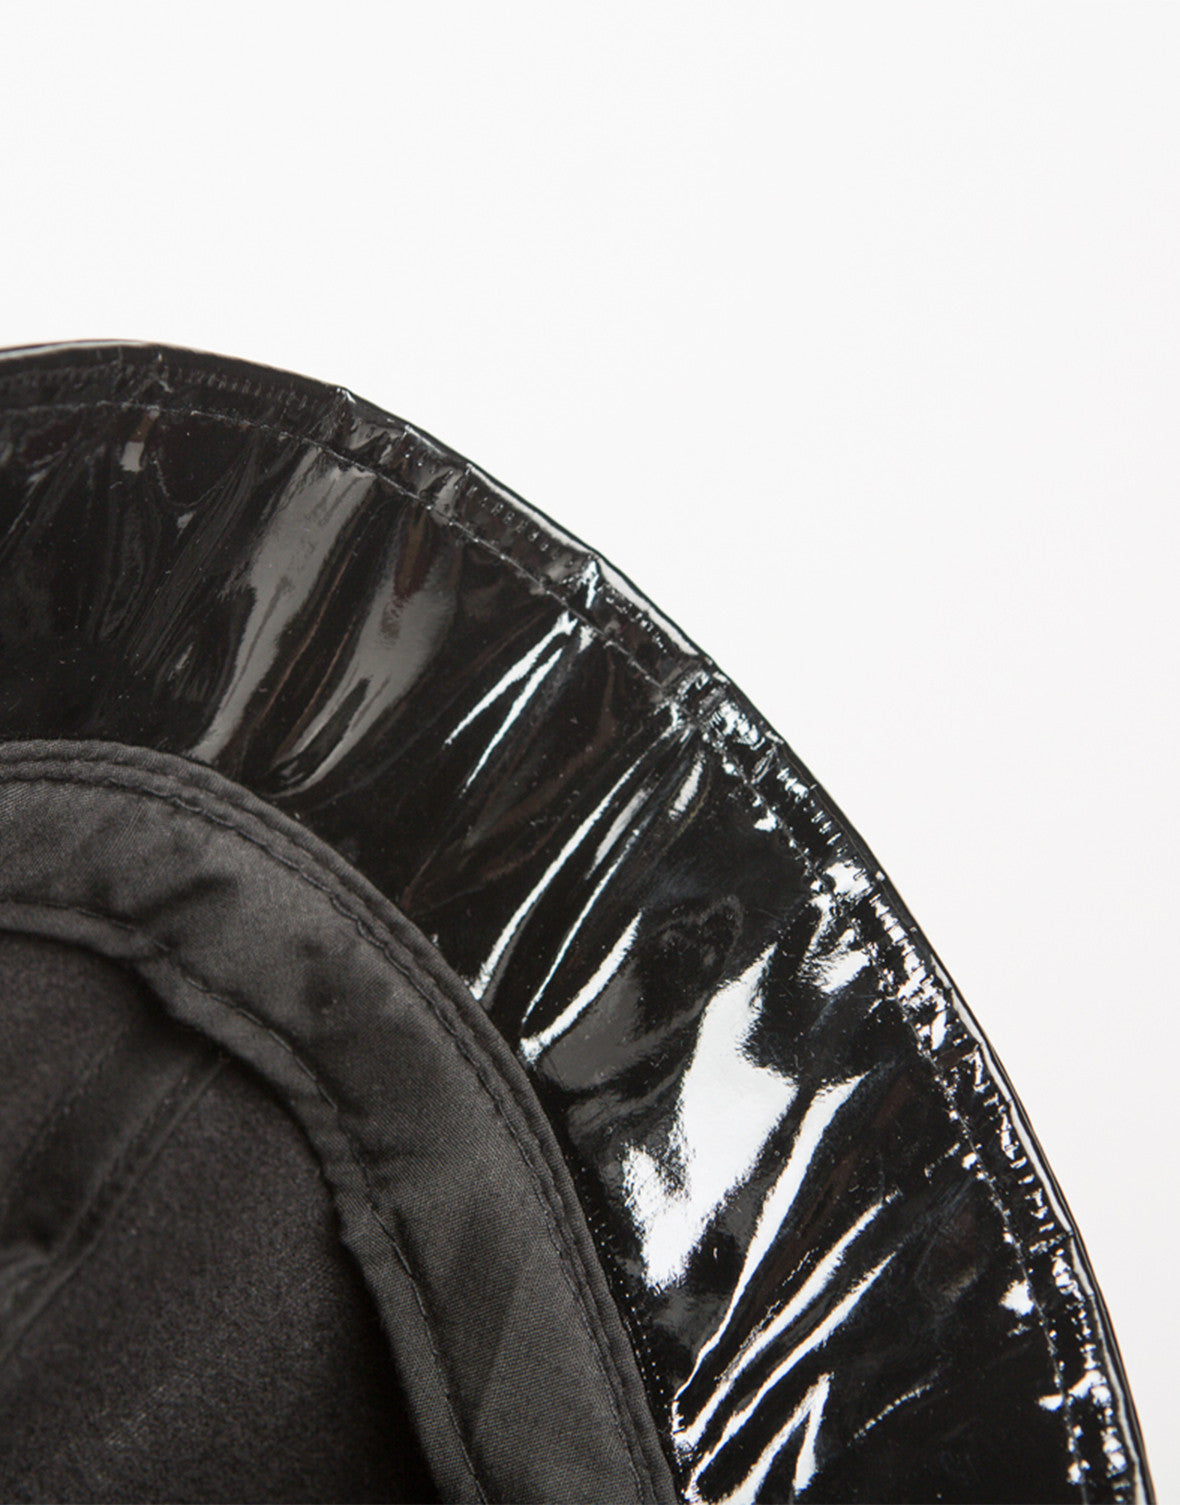 Detail of Patent Bucket Hat